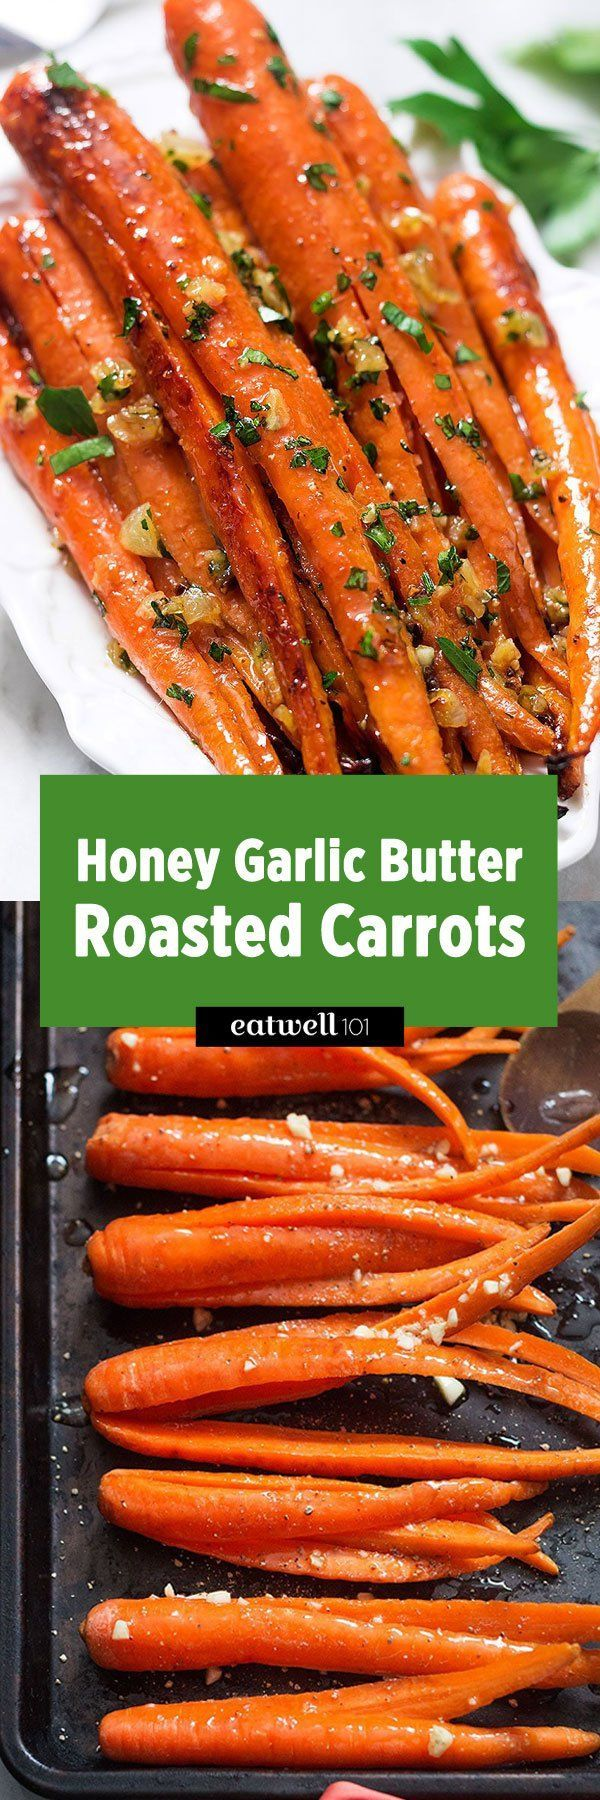 Honey garlic butter roasted carrots are so easy to make and delicious! With a pinch of cracked black pepper and Kosher salt, it makes the perfect side for a weeknight meal or a holiday crowd.Ingre…